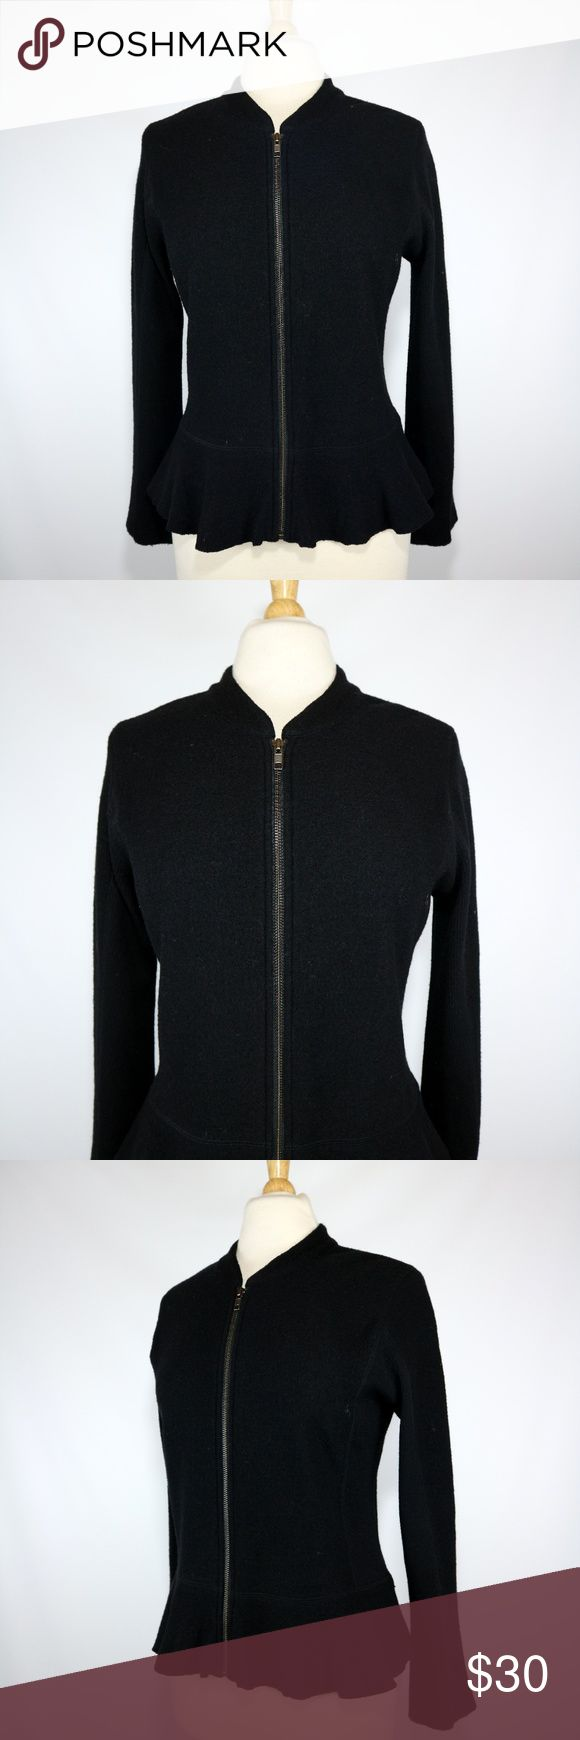 """Halogen Black Peplum Zip Up Cardigan Sweater Halogen women's black merino wool peplum style cardigan. Zips up the front. Size L Petite. Gently used. Clean. No issues to note.  20"""" armpit to armpit  15"""" shoulder to shoulder 23"""" sleeves (shoulder seam to cuff) 23"""" long (shoulder to bottom) Halogen Sweaters Cardigans"""